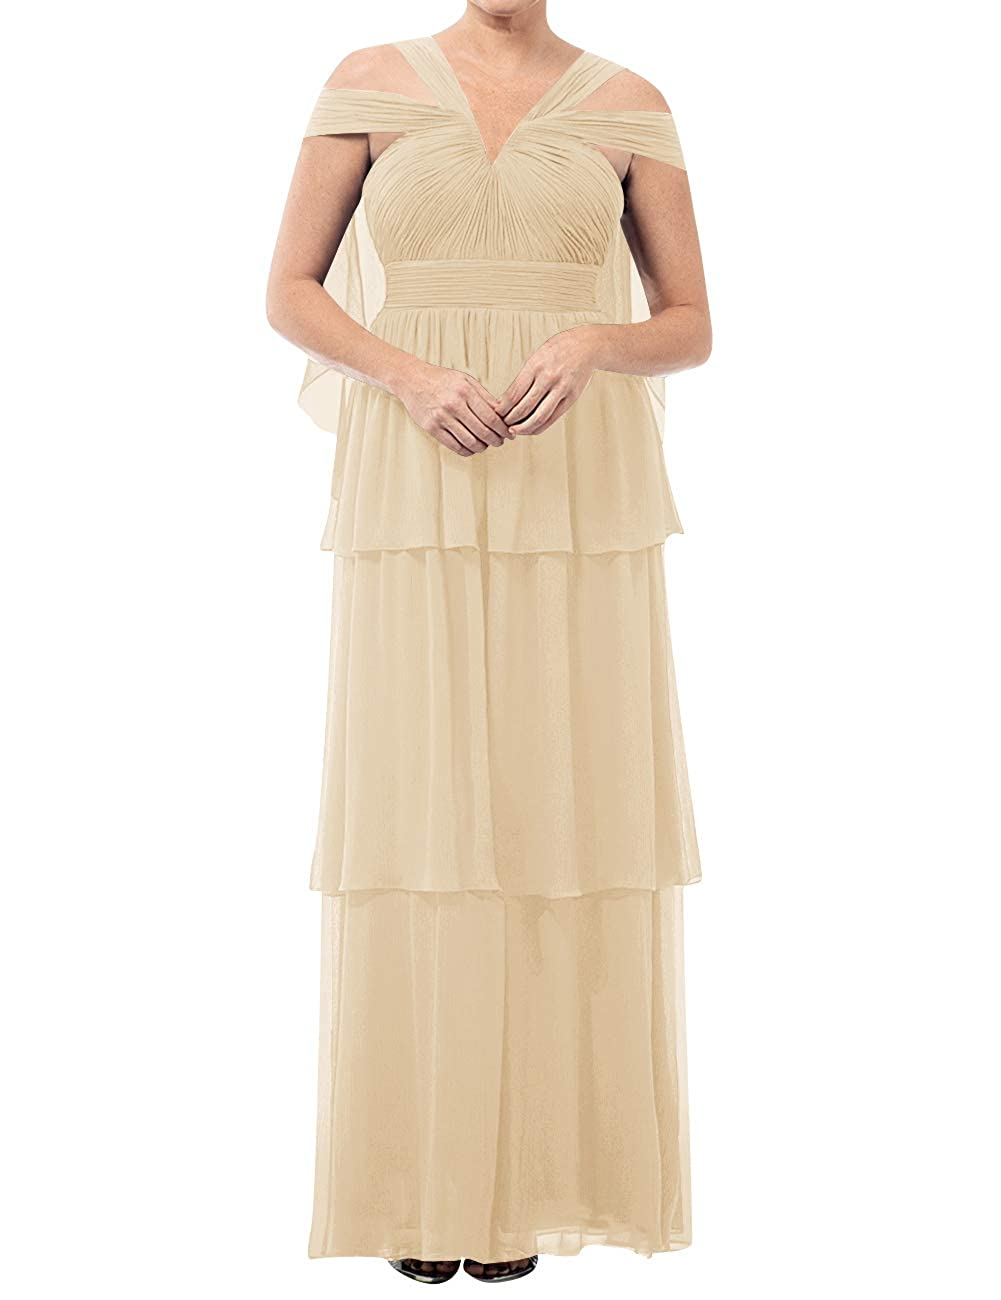 Champagne Mother of The Bride Dresses VNeck Long Mother of Groom Dress Plus Size Evening Gowns